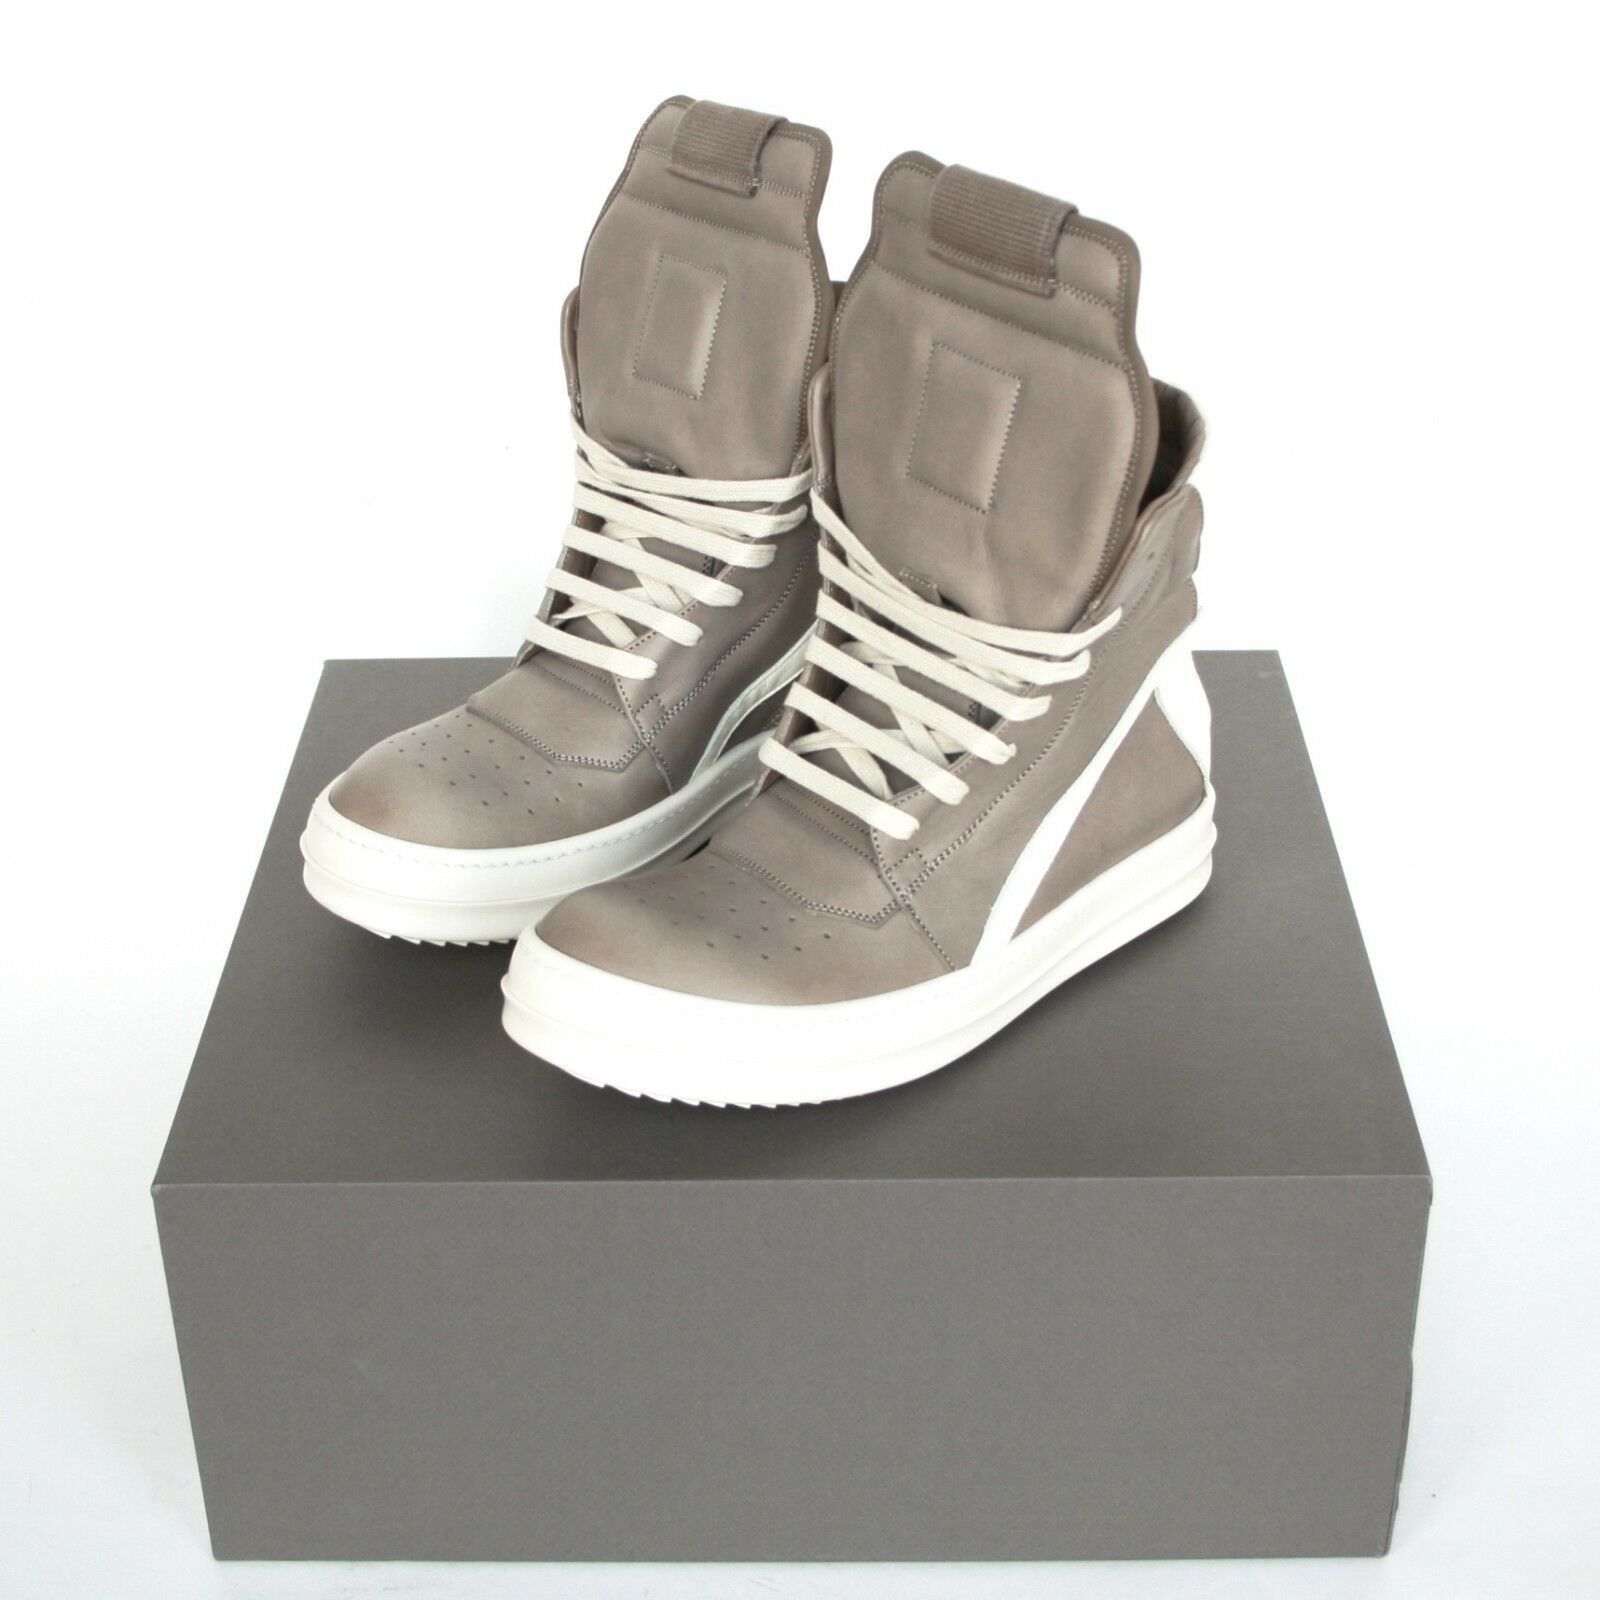 62168d118919 RICK OWENS beige milk white leather shoes Geobasket hi-top dunks sneakers  39 NEW Item Number  401350437704